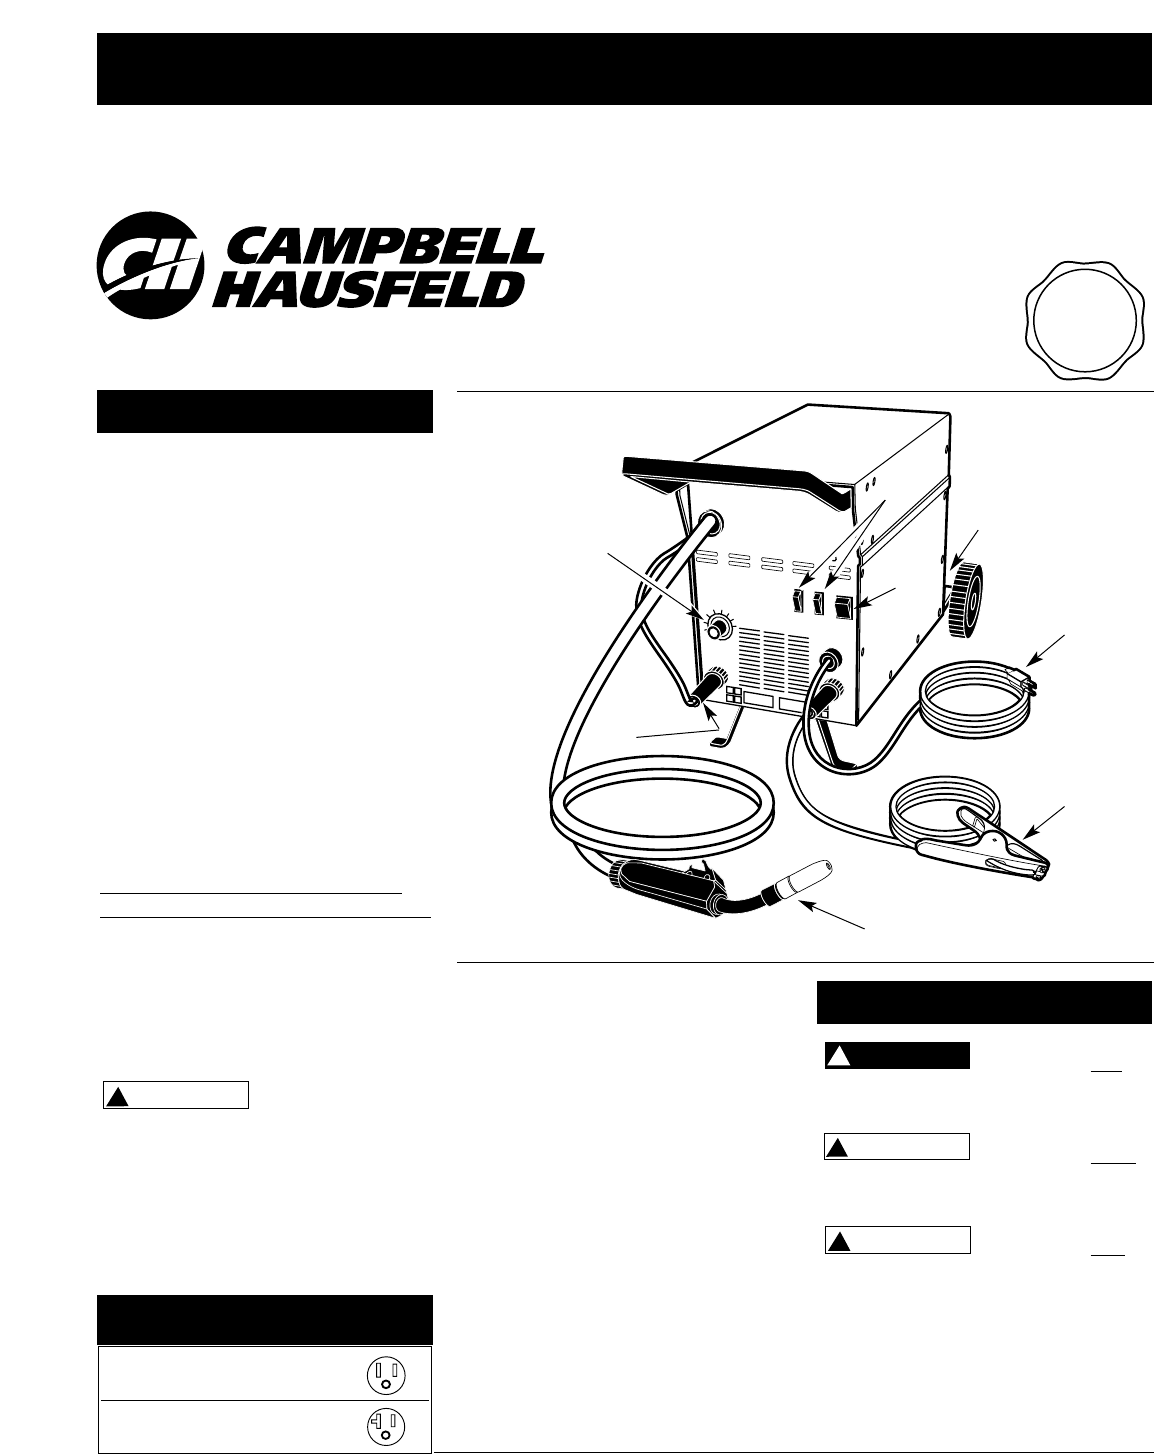 Campbell Hausfeld Welder Manual